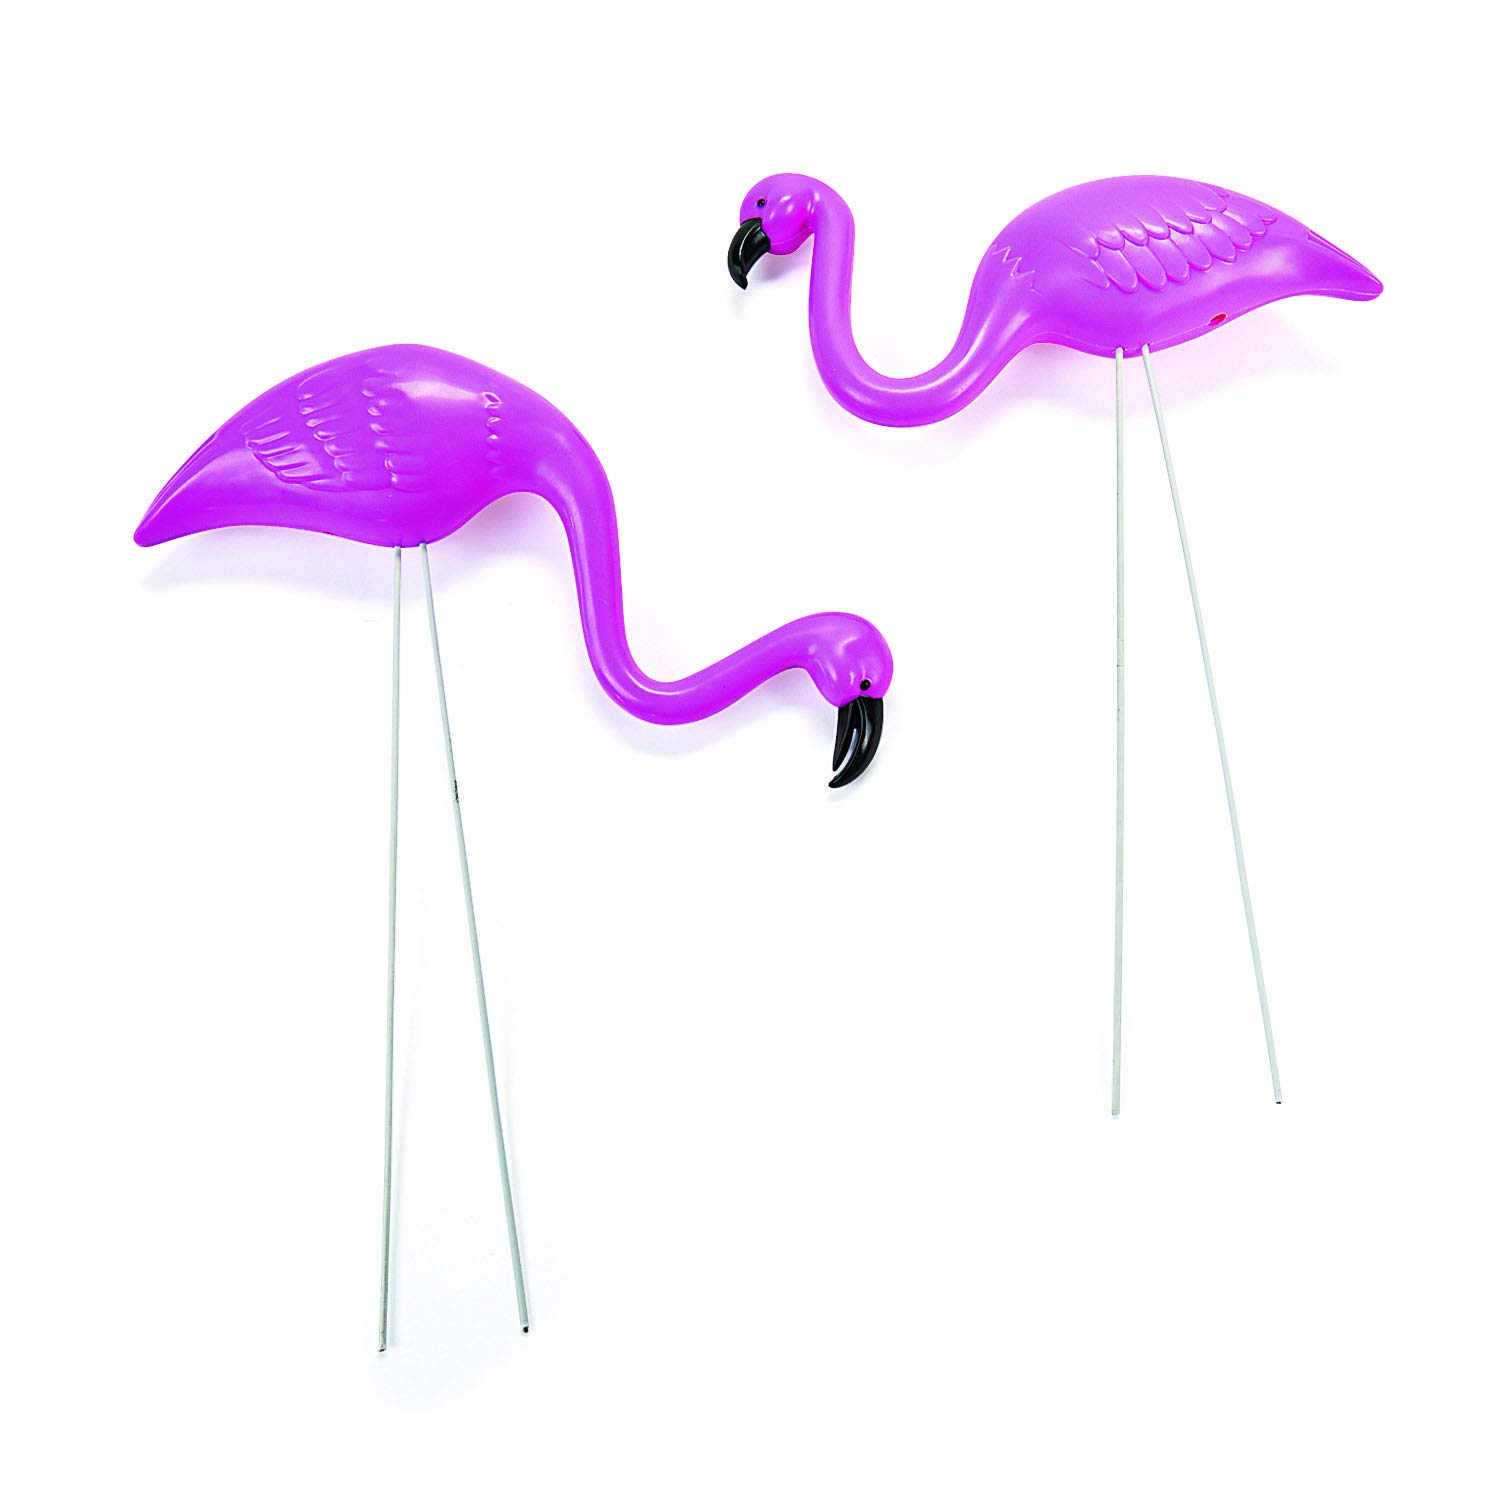 "Fun Express Mini Pink Flamingo Lawn Ornaments (2 Pieces, 8"" with 12"" Stakes) Lawn Decor, Unique and Quirky Home Decor & Gifts, Party Decorations"